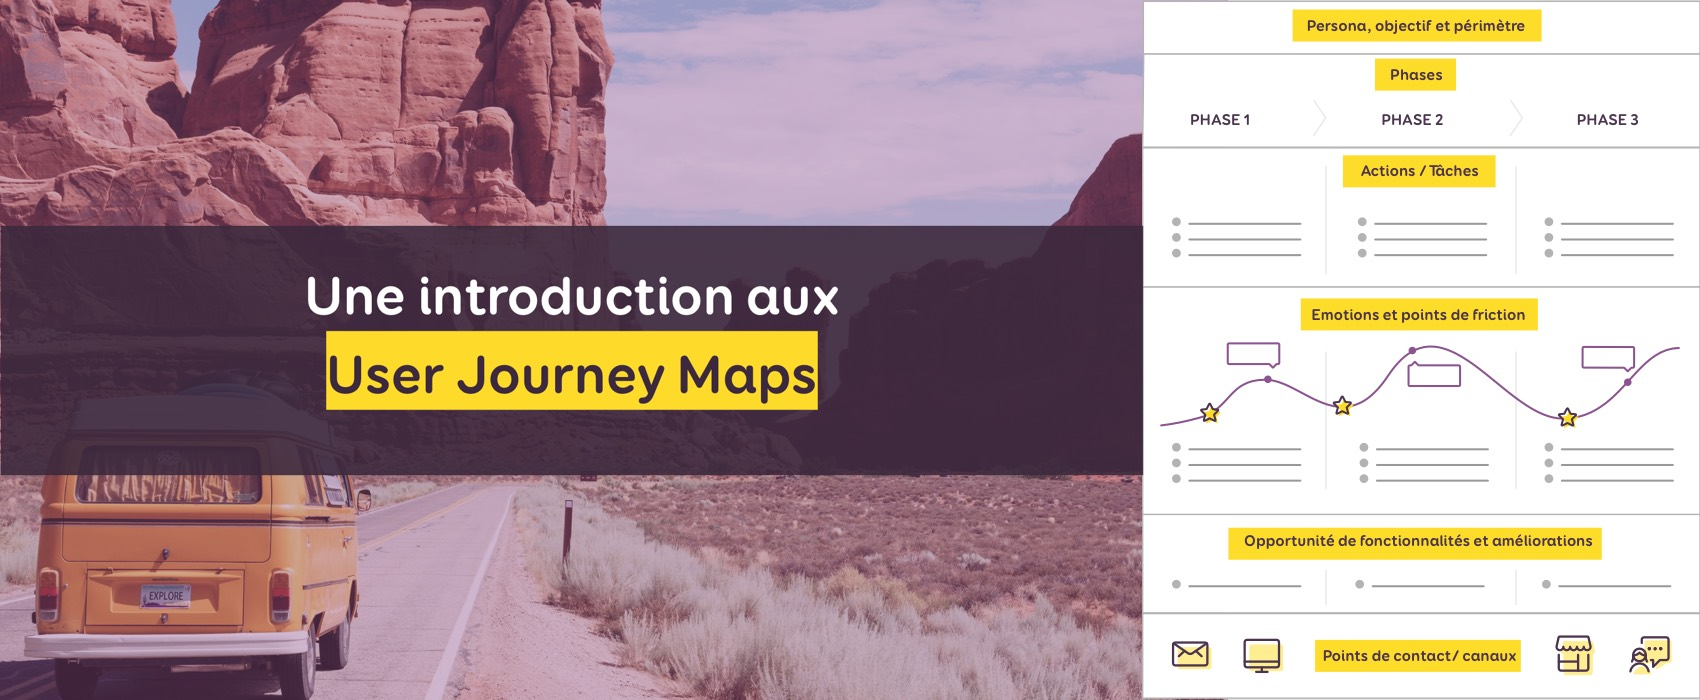 Introduction aux « User Journey Maps » + modèles PDF à télécharger